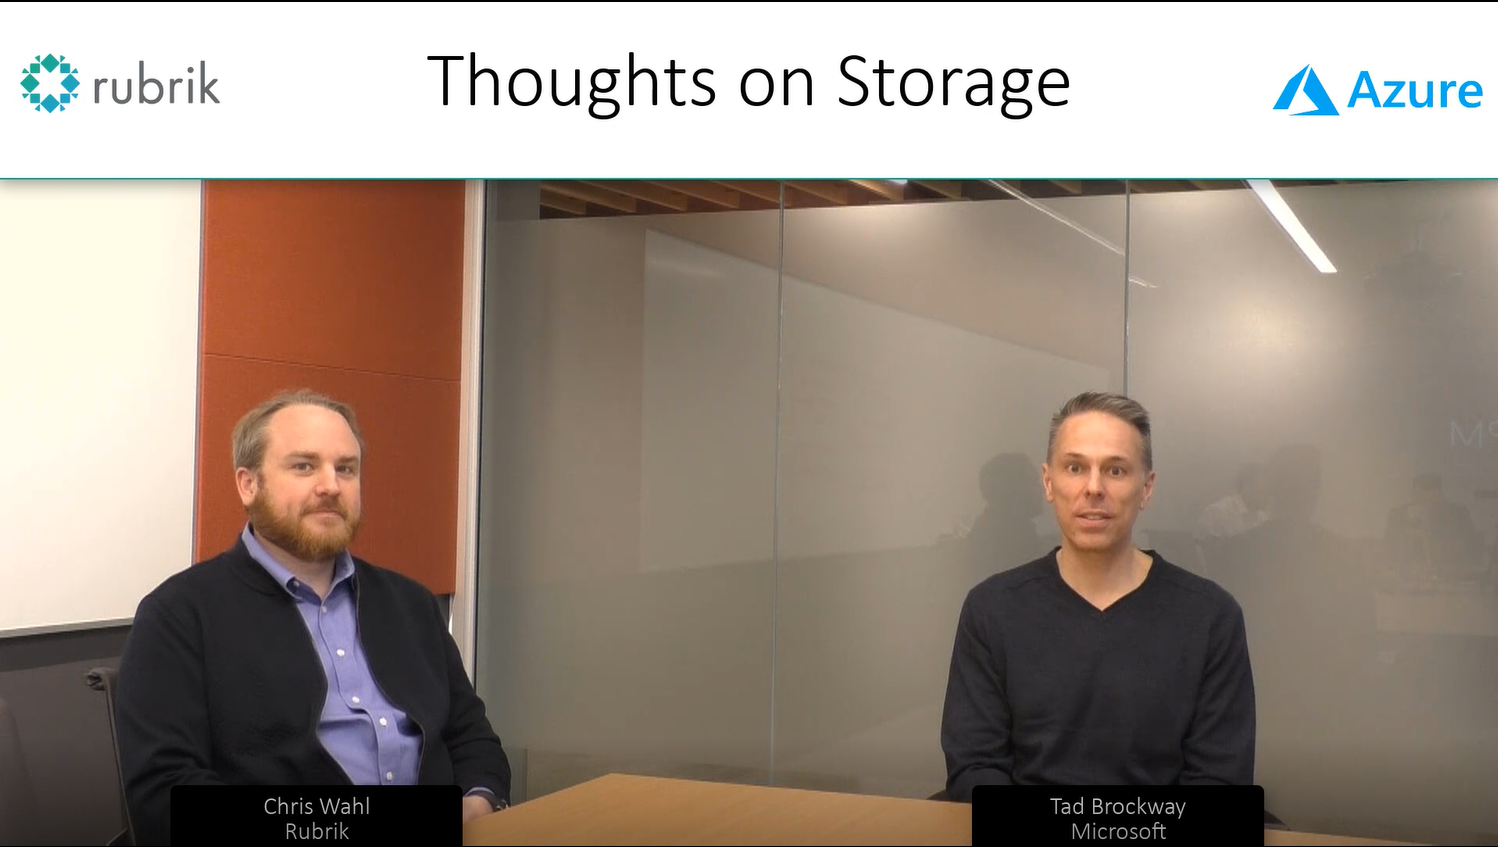 Thoughts on Storage with Rubrik